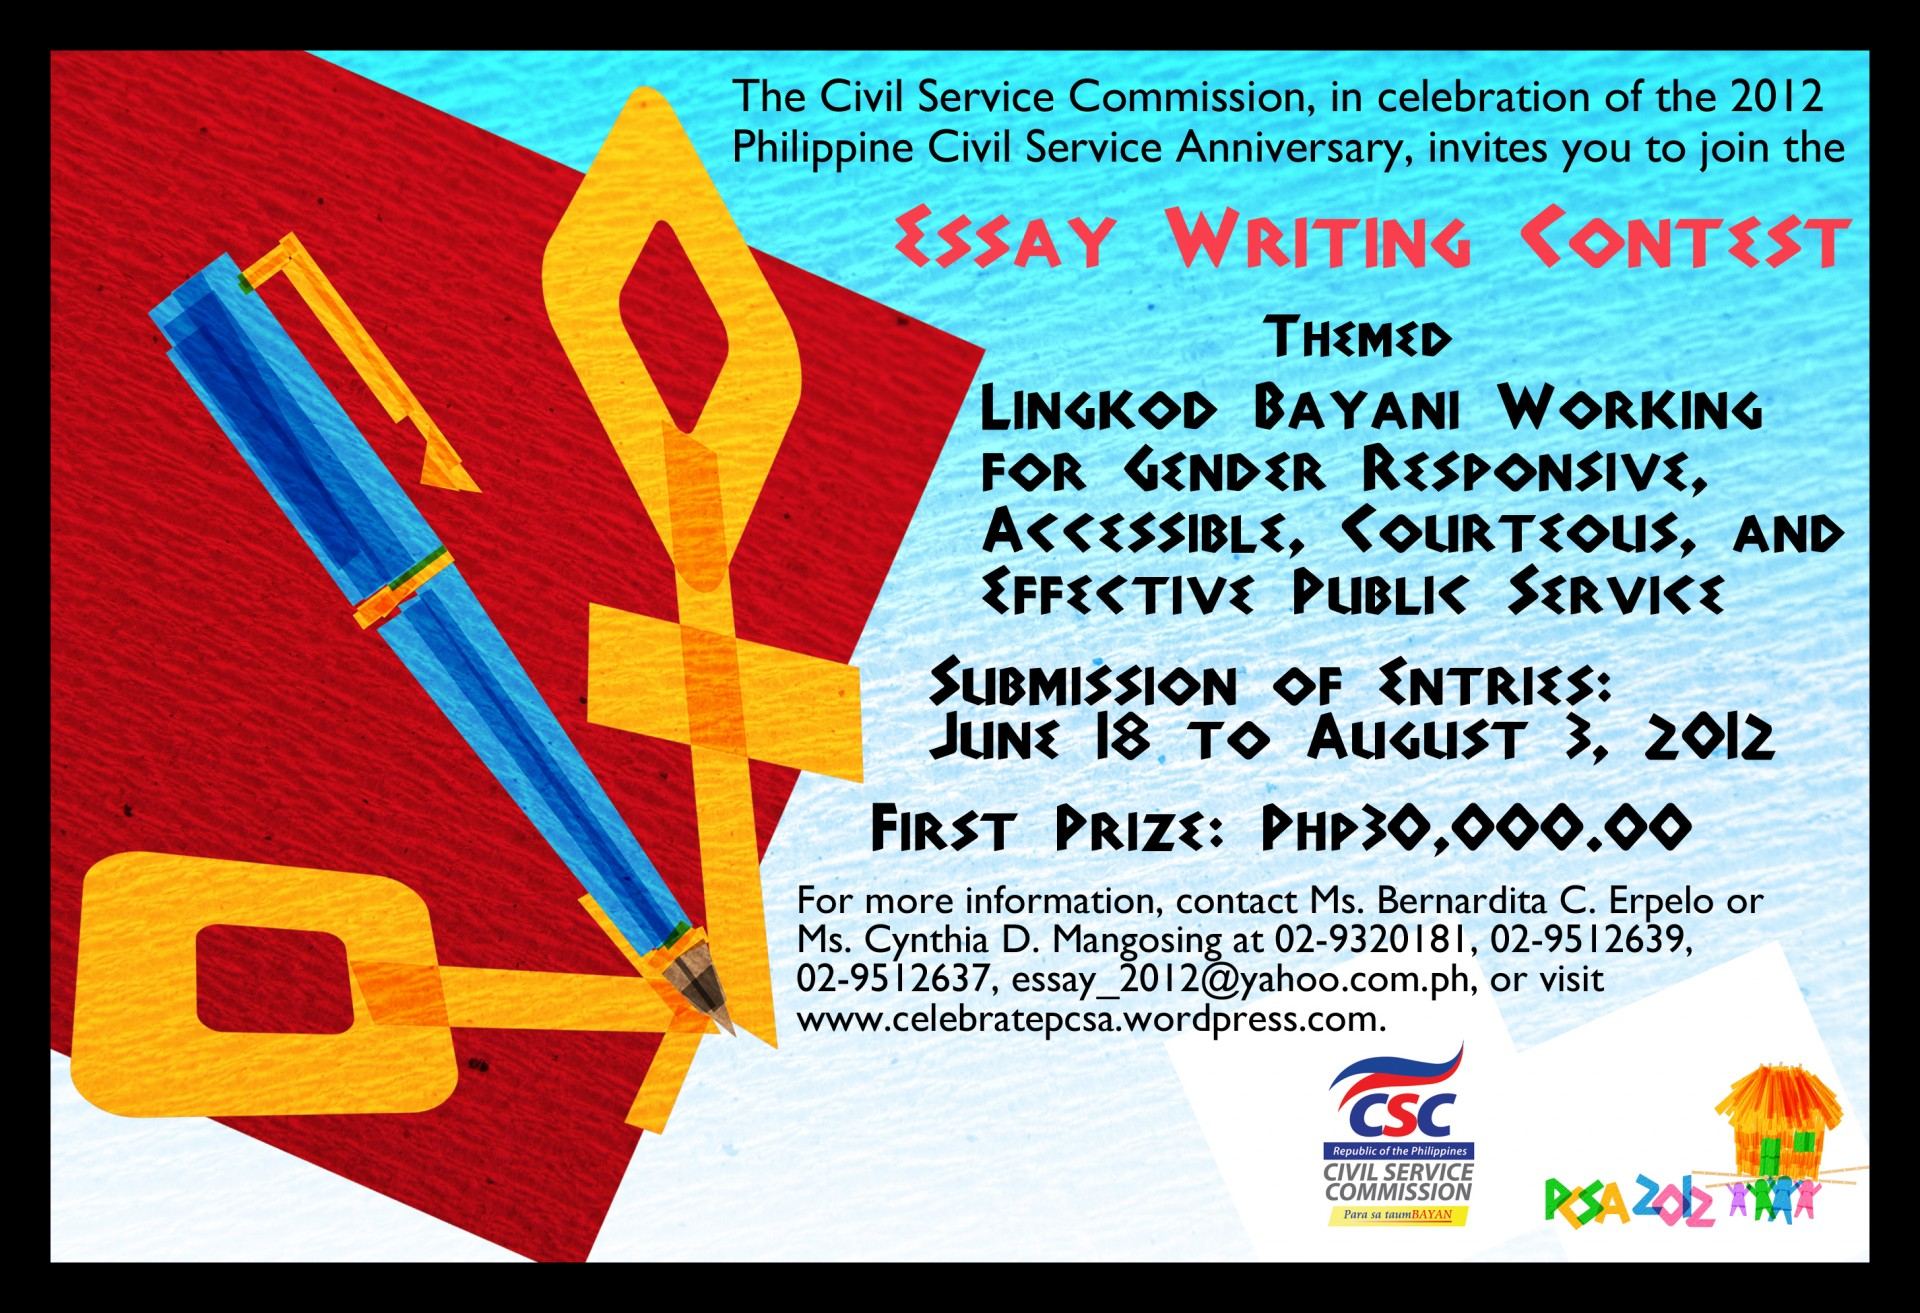 002 Essay Writing Contest 2012pcsa Flyer Kubo Essay3 Incredible Free Contests 2018 International Competitions For High School Students India 1920